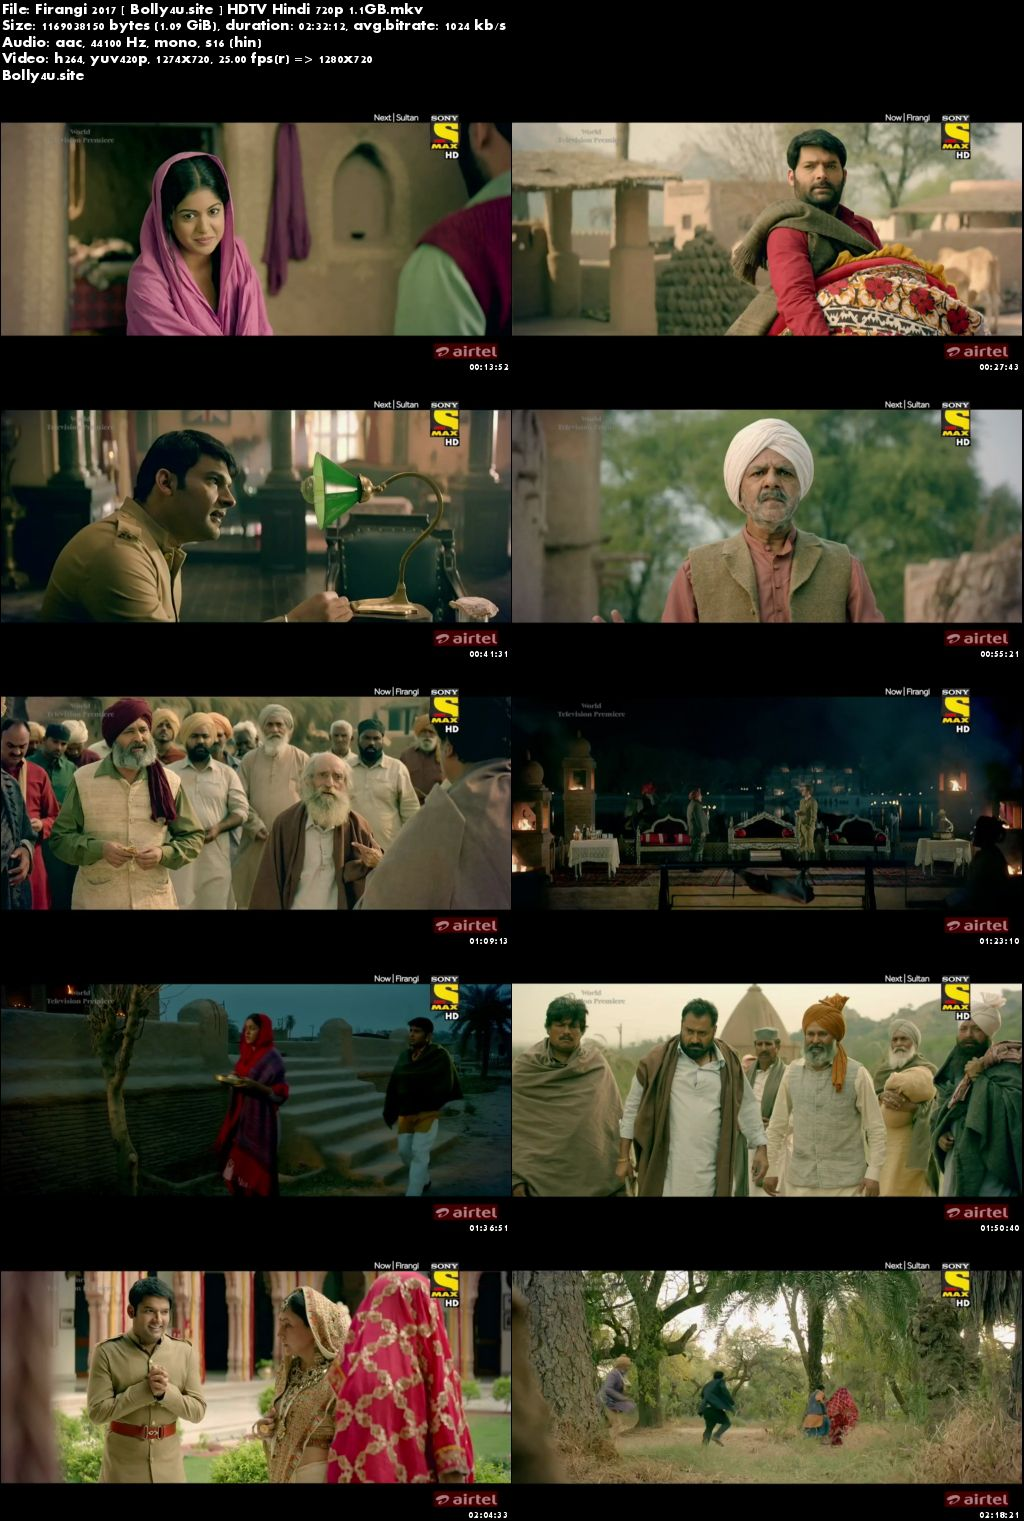 Firangi 2017 HDTV 1.1GB Hindi 720p Download